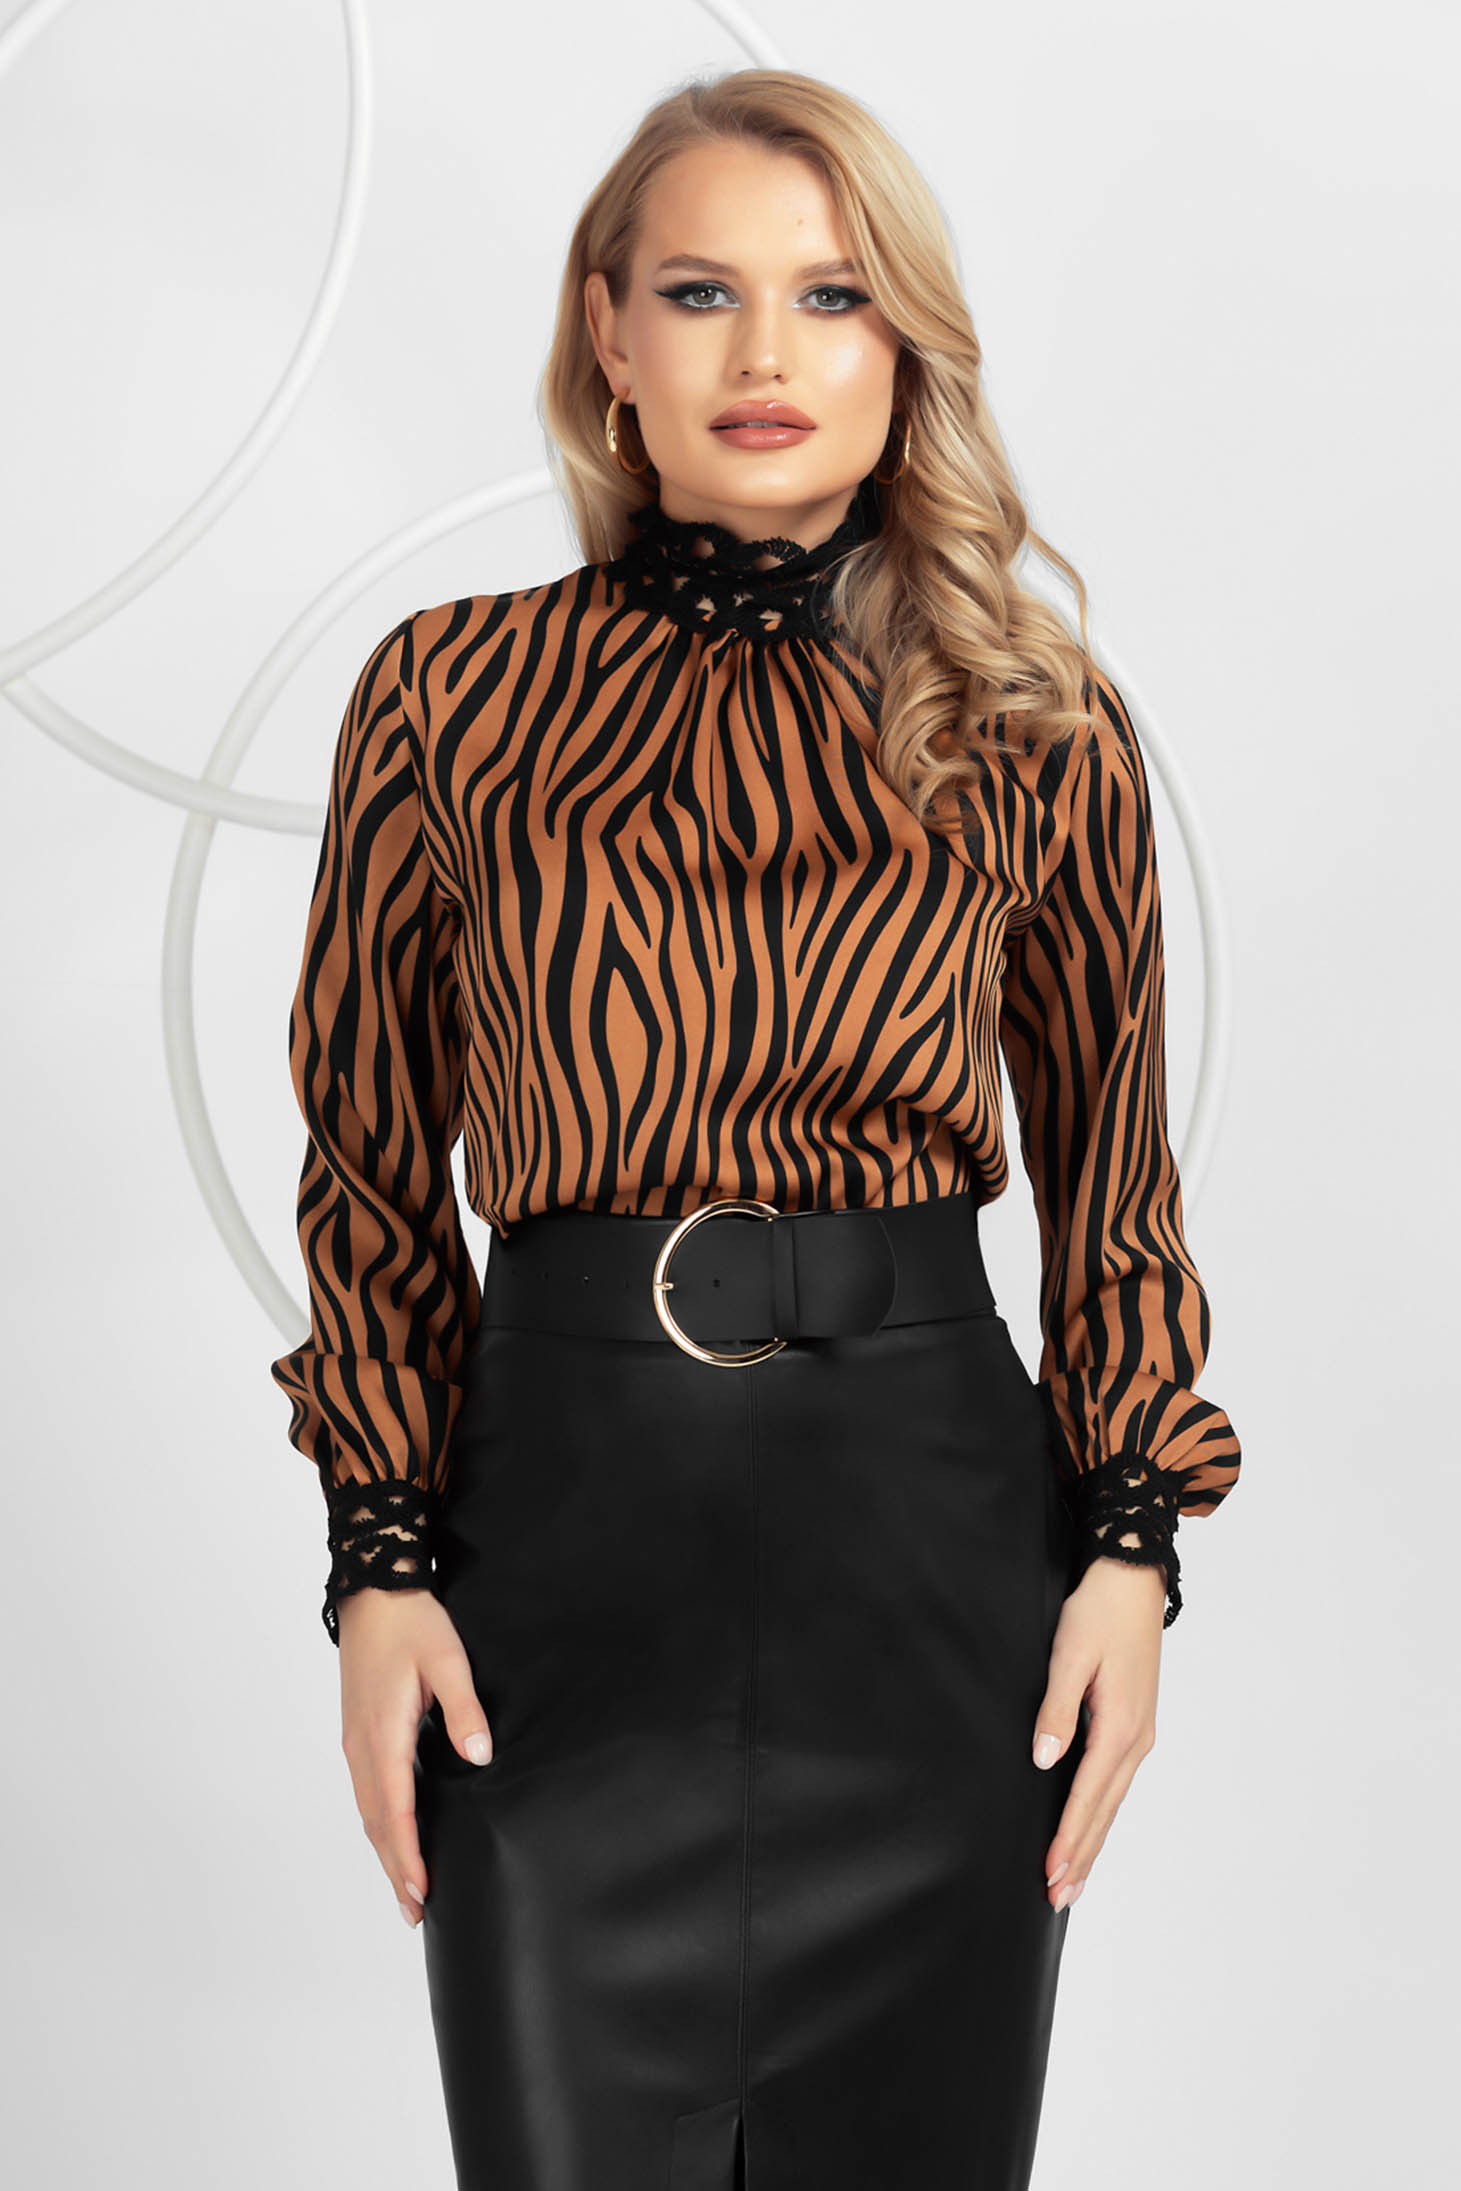 Animal print brown from satin women`s blouse nonelastic fabric with lace details